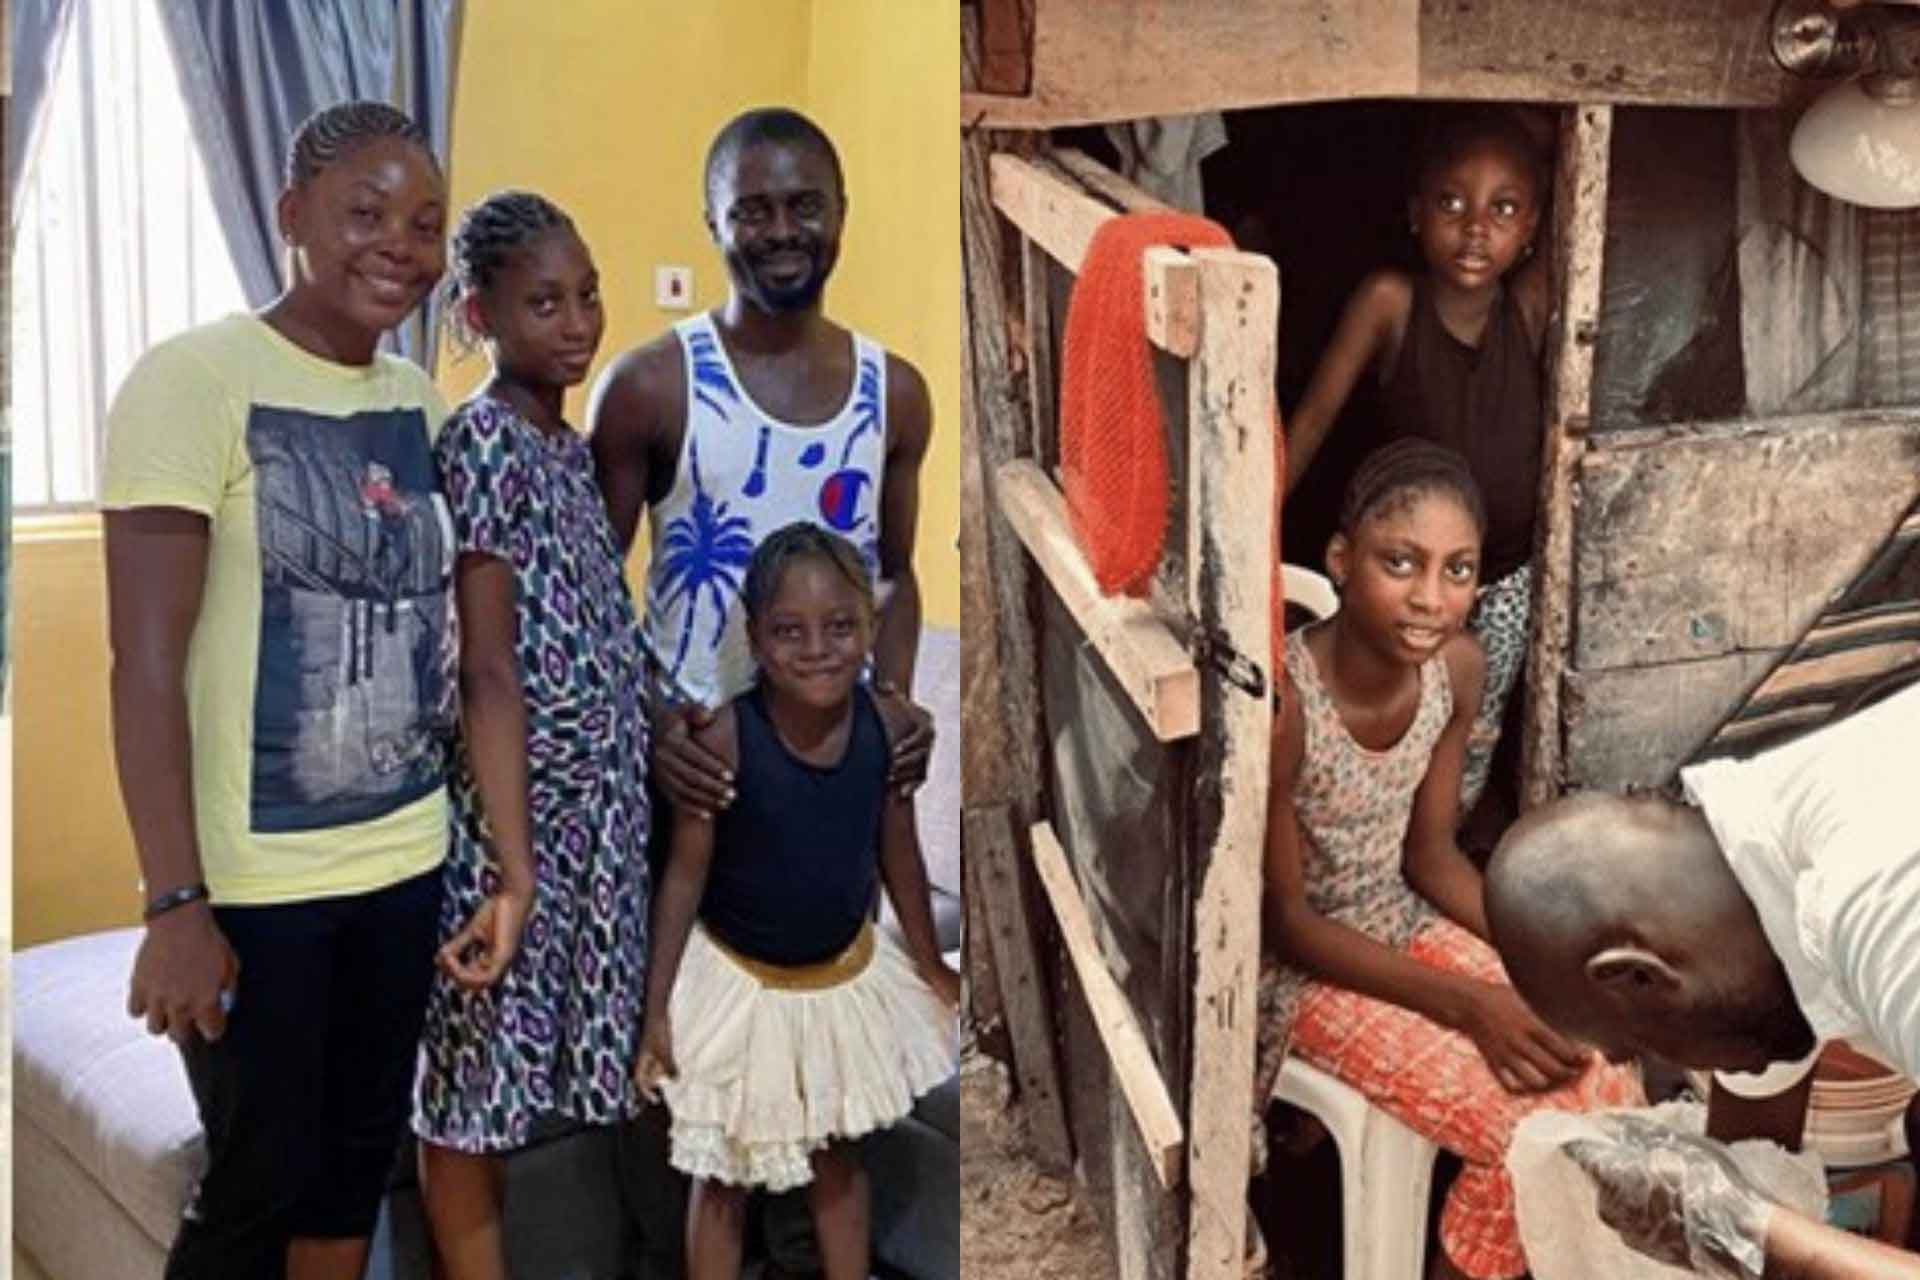 Nollywood actor buys new house for a family living in a slum   Watch on Sidomex